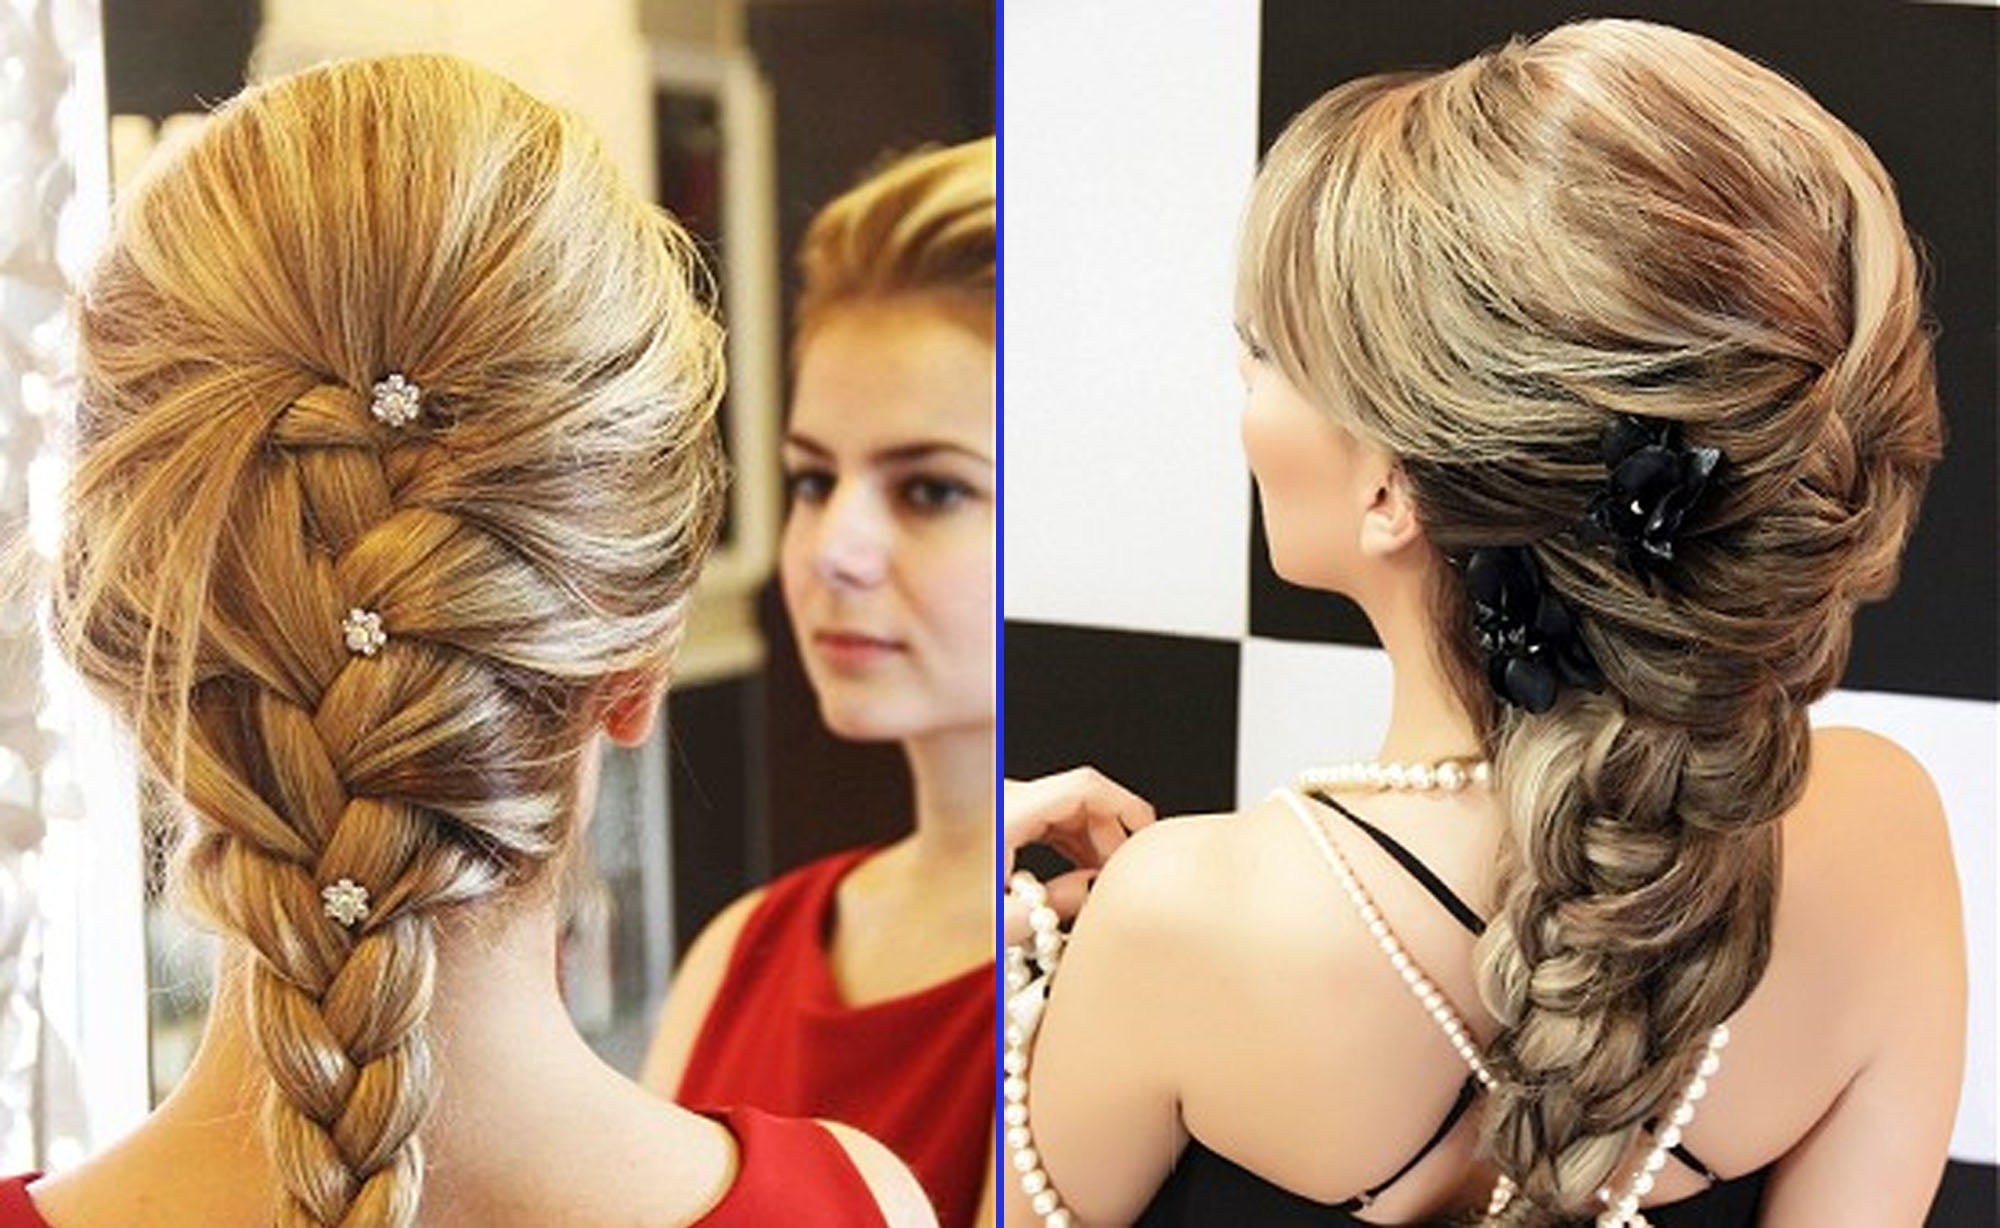 Braided hairstyles 2017 with beaded